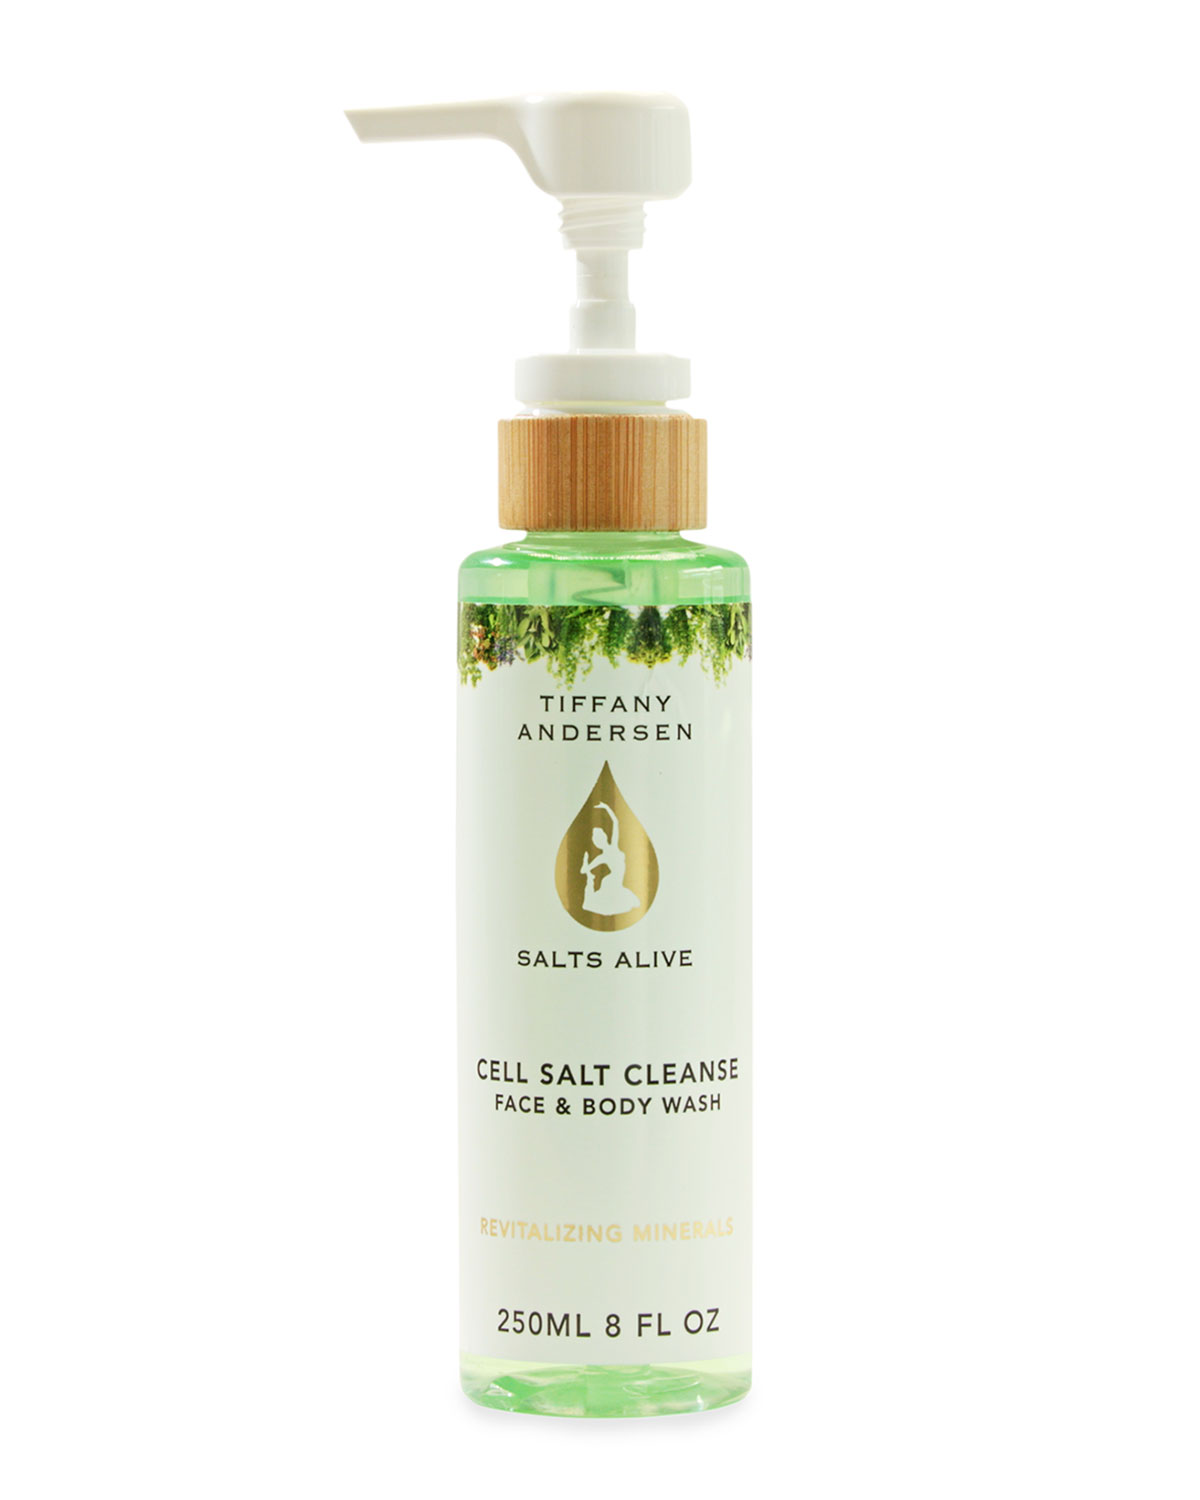 8 oz. Cell Salt Cleanse Face & Body Wash